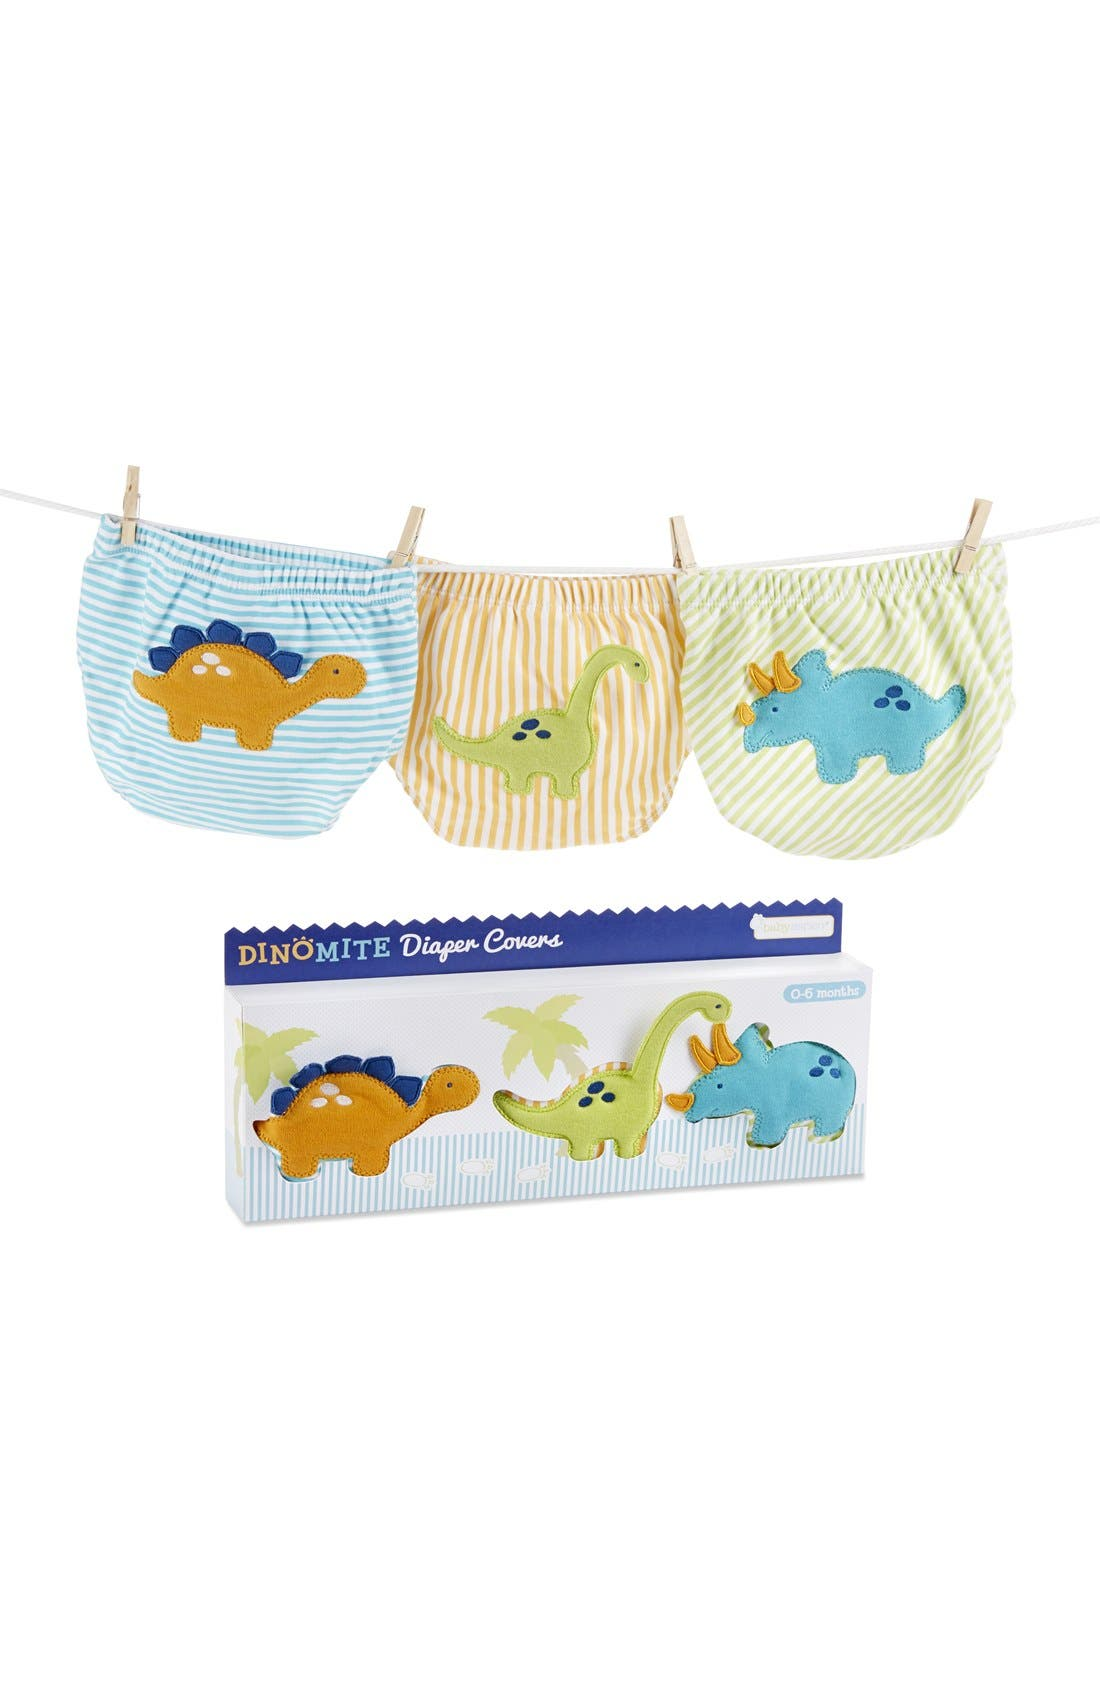 Alternate Image 1 Selected - Baby Aspen 'Dinomite' Diaper Covers (3-Pack) (Baby)